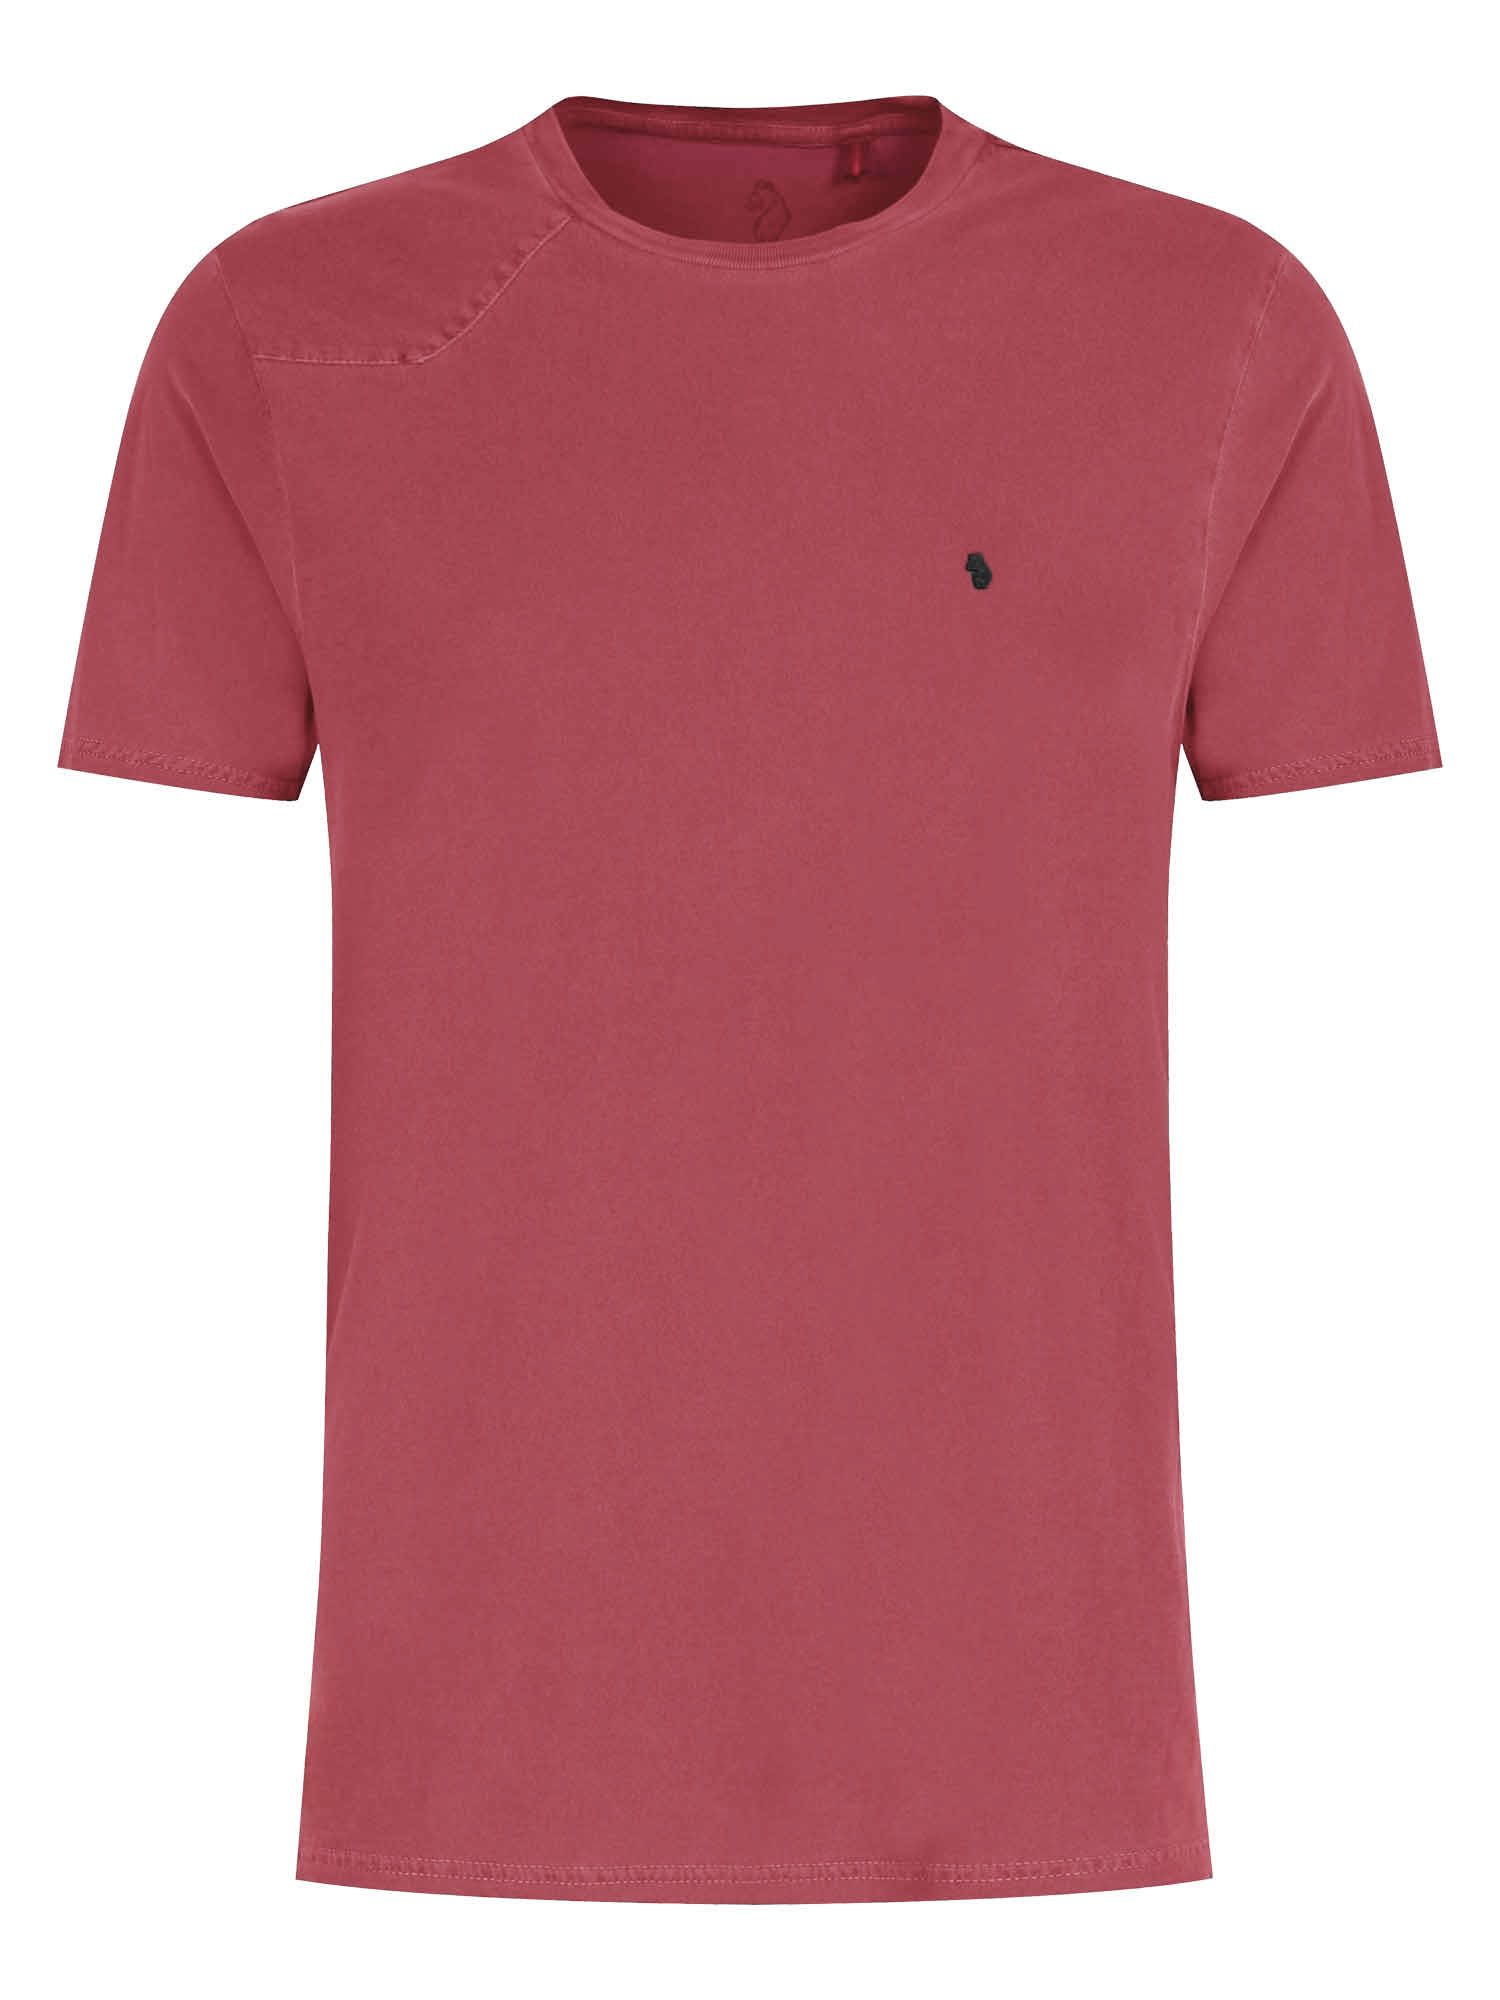 Men's Luke 1977 Hammerhead Dyed Crew Neck T-Shirt, Red